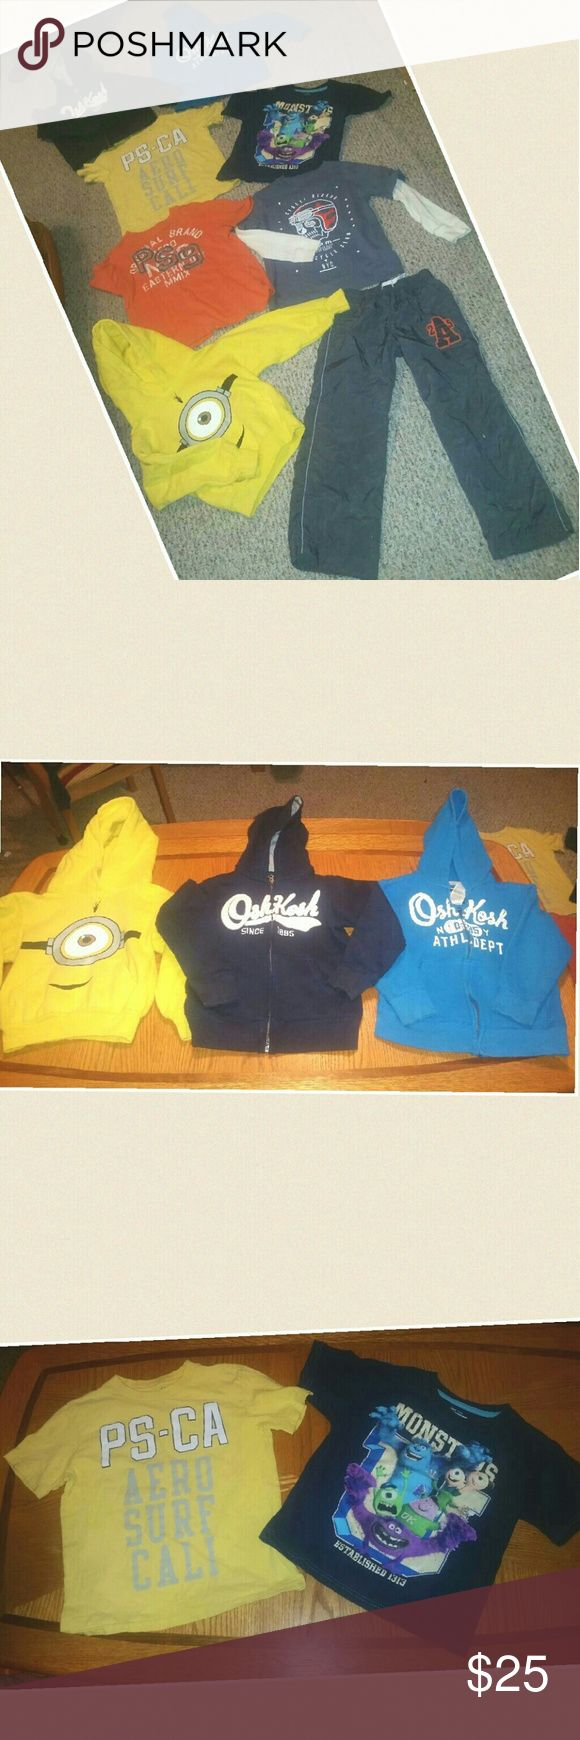 BOYS HOODIES, TEES AND PANT BUNDLE - SIZE 6 ** YELLOW HOODIE - ( SMALL 6 - 8 ) 80% COTTON AND 20% POLYESTER. ..( HAS VERY MINOR PEELING ON PRINT  ** NAVY BLUE OSH KOSH HOODIE - 6   ** LIGHT BLUE OSH KOSH HOODIE -  6 (  ( HAS SMALL WHITE SPOT AT HEMLINES. .  ** YELLOW AEROPOSTALE T- XS 7 (100% COTTON ** MONSTERS PIXAR BLUE T  -  7  (100% COTTON) ** ORANGE AEROPOSTALE T - XS 7  (100% COTTON ** GREY L/ SLEEVE GAP KIDS T - S 6-7 (100% COT ) ** CHILDREN PLACE SWEAT PANTS - 6 ( HAS VERY SMALL TEAR…